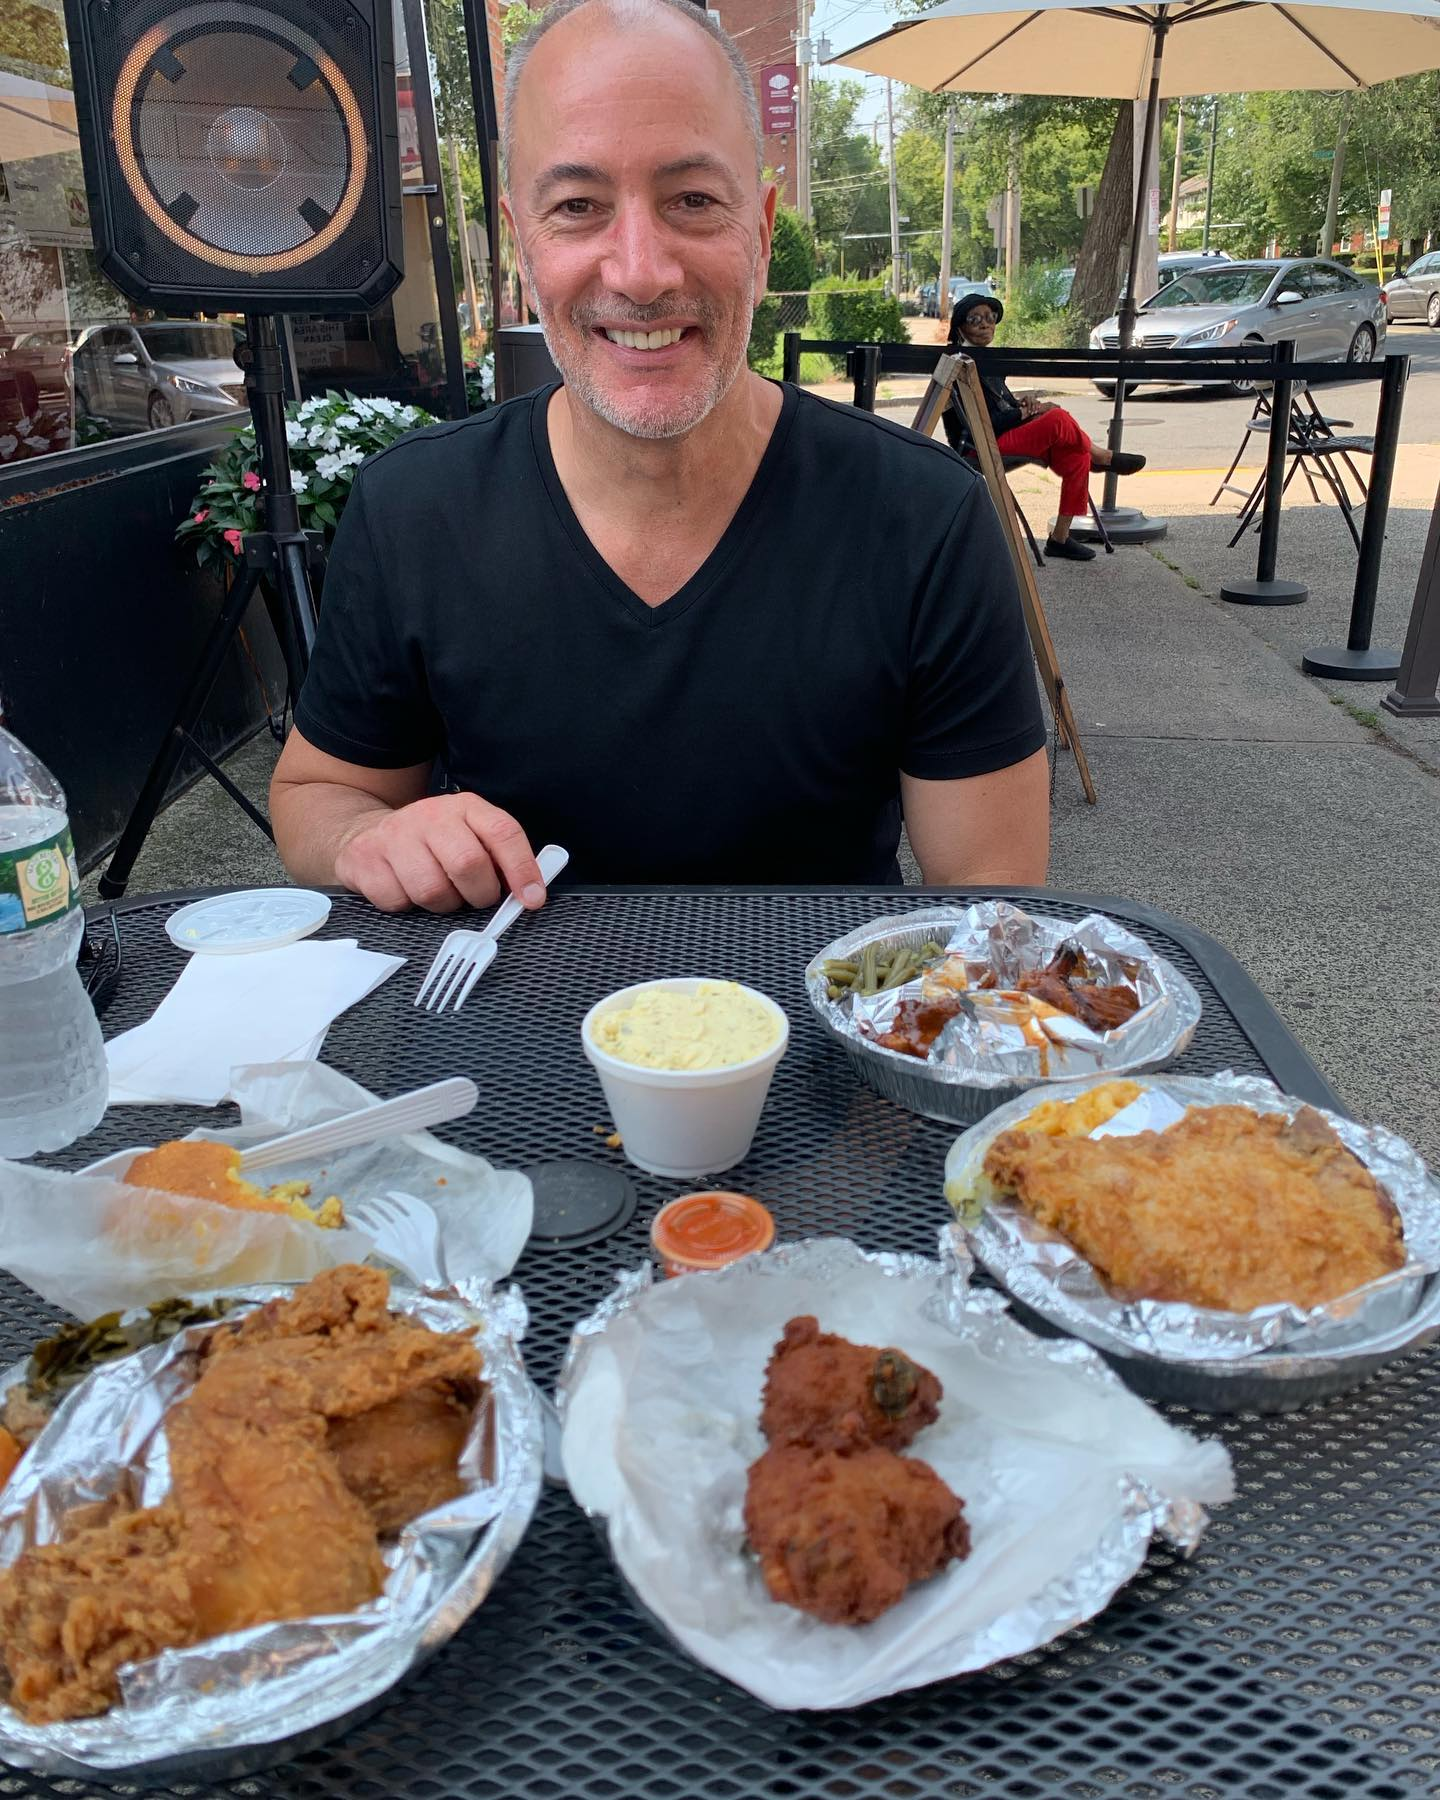 PODCAST – Thursday, August 26: Chaz's New Haven Soul Food Experience; Dumb Ass News; Comedian Steve Hostetter